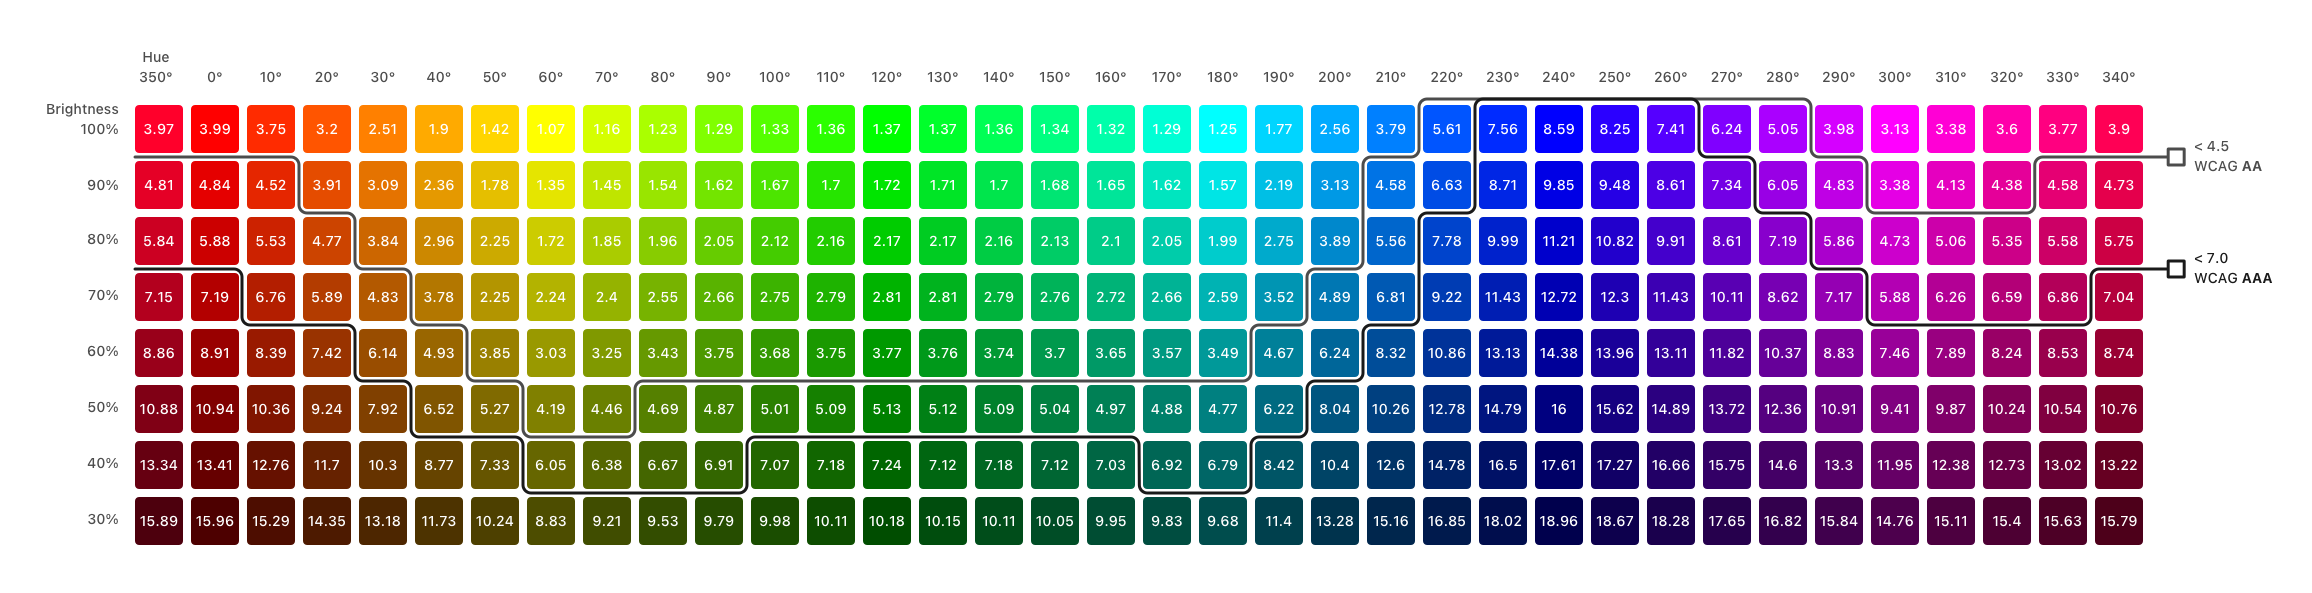 WCAG contrast ratio of white on HSB colors. Brightness from 100% to 30%; All colors with 100% saturation